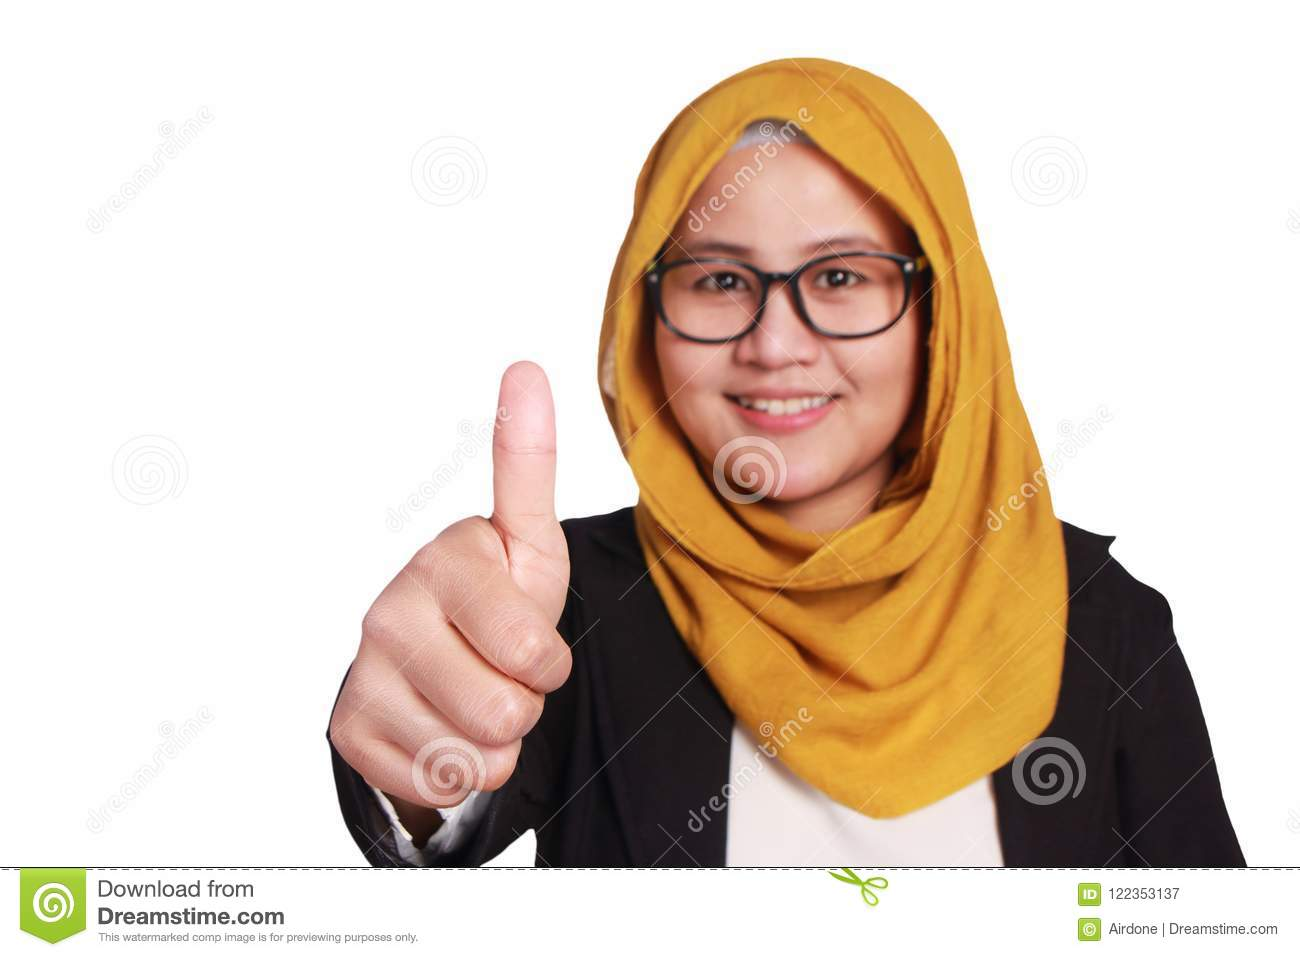 Happy Asian muslimah businesswoman wearing glasses and suit with thumbs up  gesture. Isolated on white. Close up head and shoulders